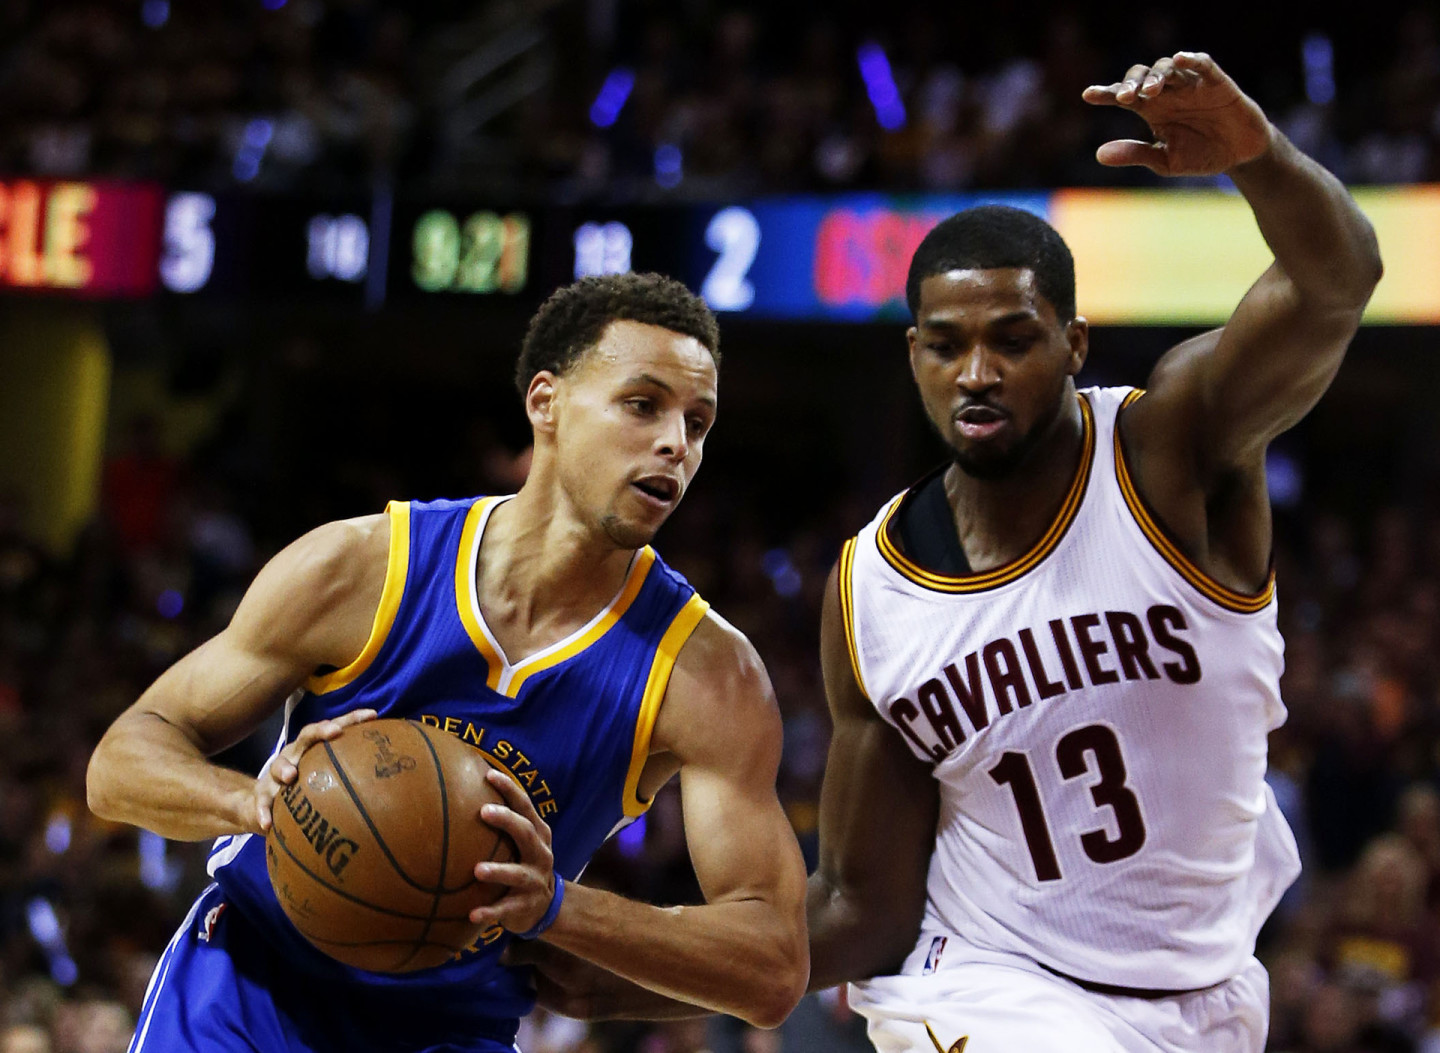 Stephen Curry #30 of the Golden State Warriors drives against Tristan Thompson #13 of the Cleveland Cavaliers in the first quarter during Game Six of the 2015 NBA Finals. (Ezra Shaw/Getty)